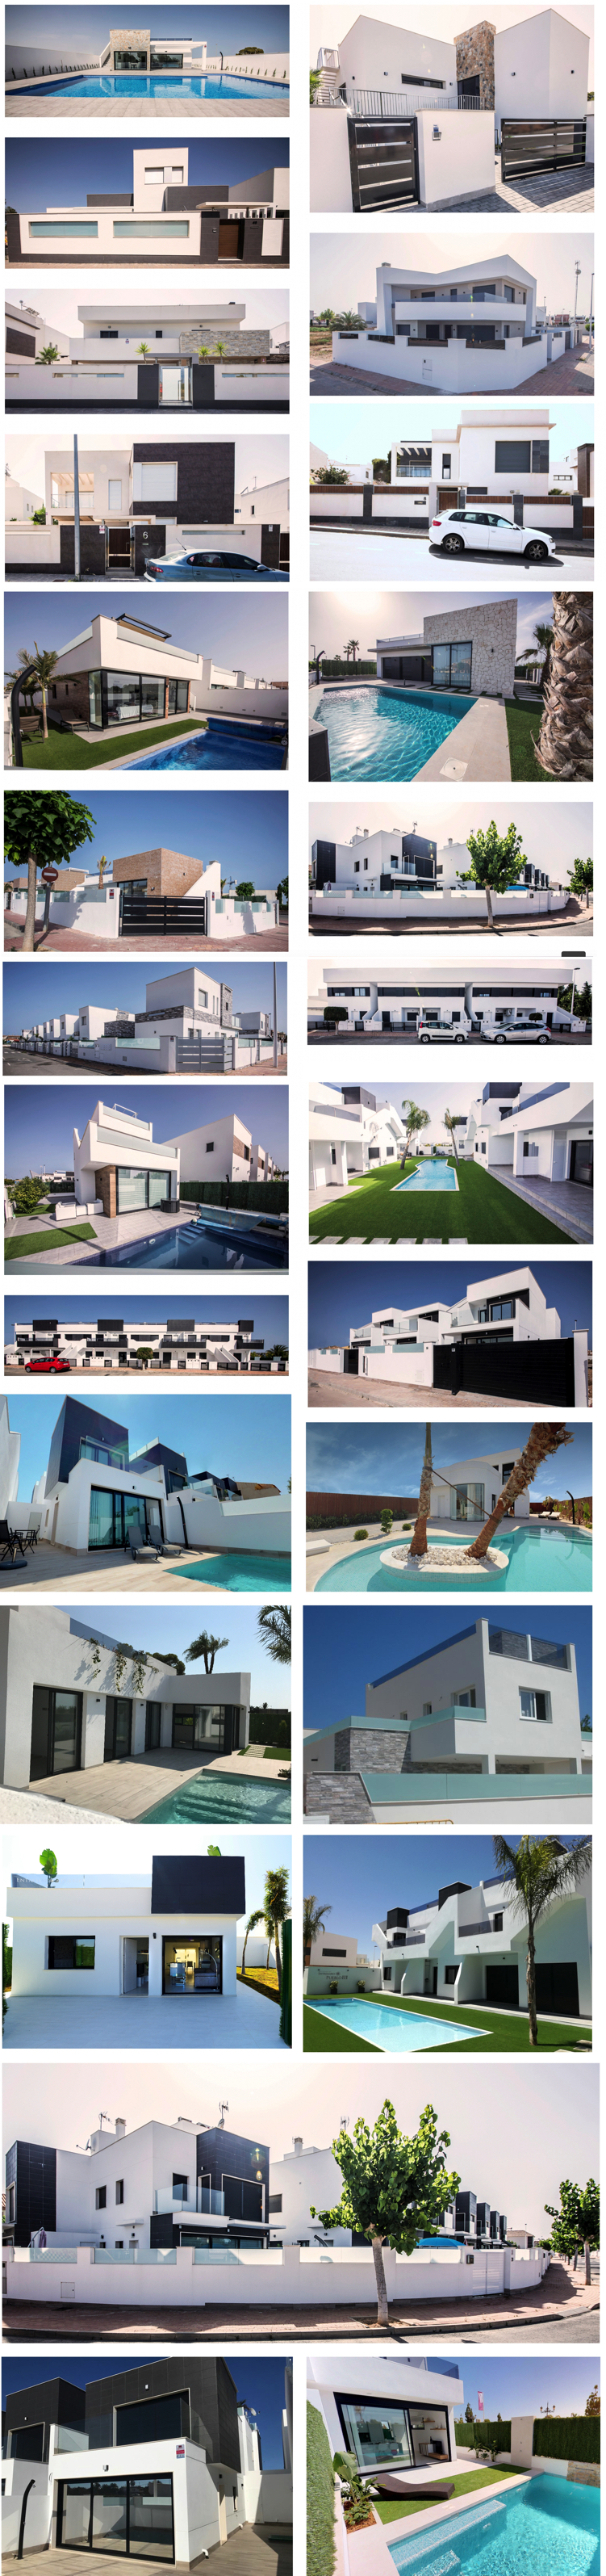 Projects, villas and apartments from Group Uno